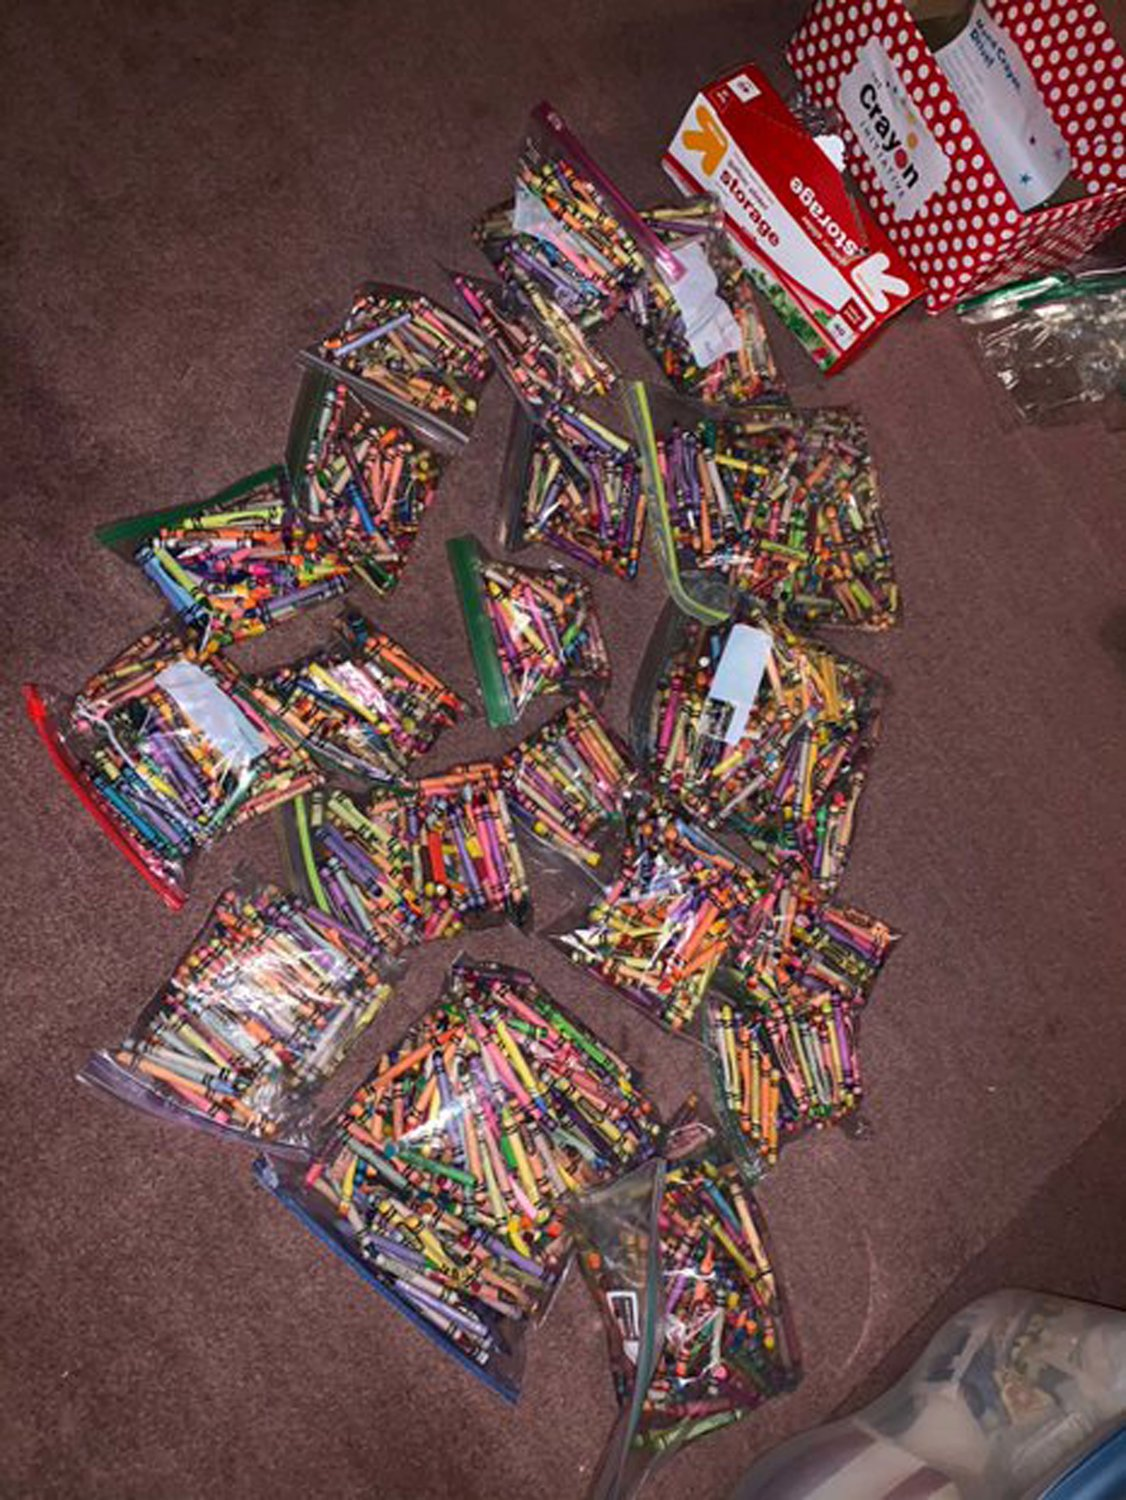 Several bags of crayons collected for the Crayon Initiative.